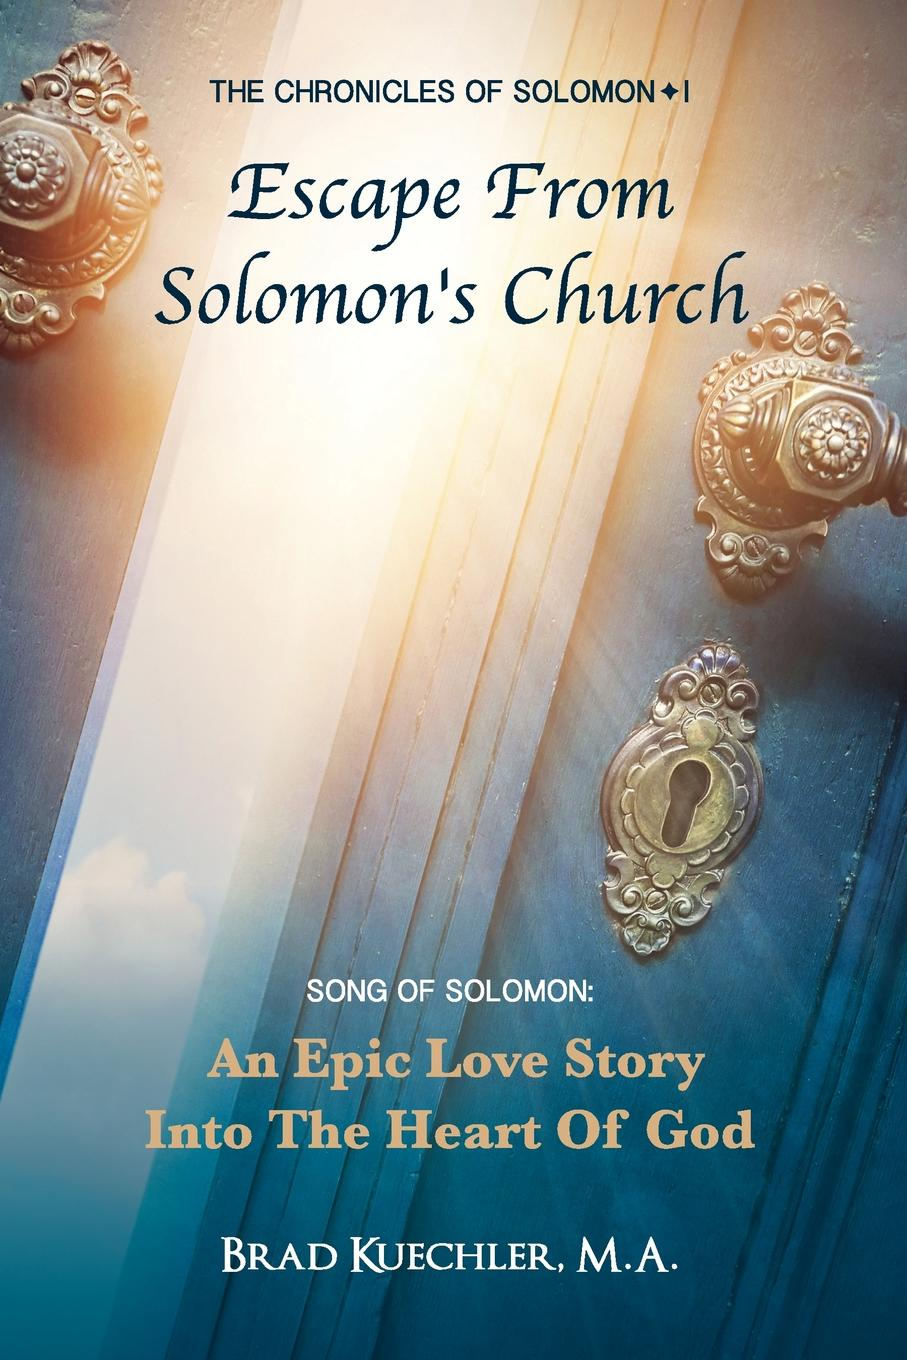 Brad Kuechler The Chronicles of Solomon I Escape From Solomon.s Church. Song Of Solomon: An Epic Love Story Into The Heart Of God adeney walter frederic the expositor s bible the song of solomon and the lamentations of jeremiah